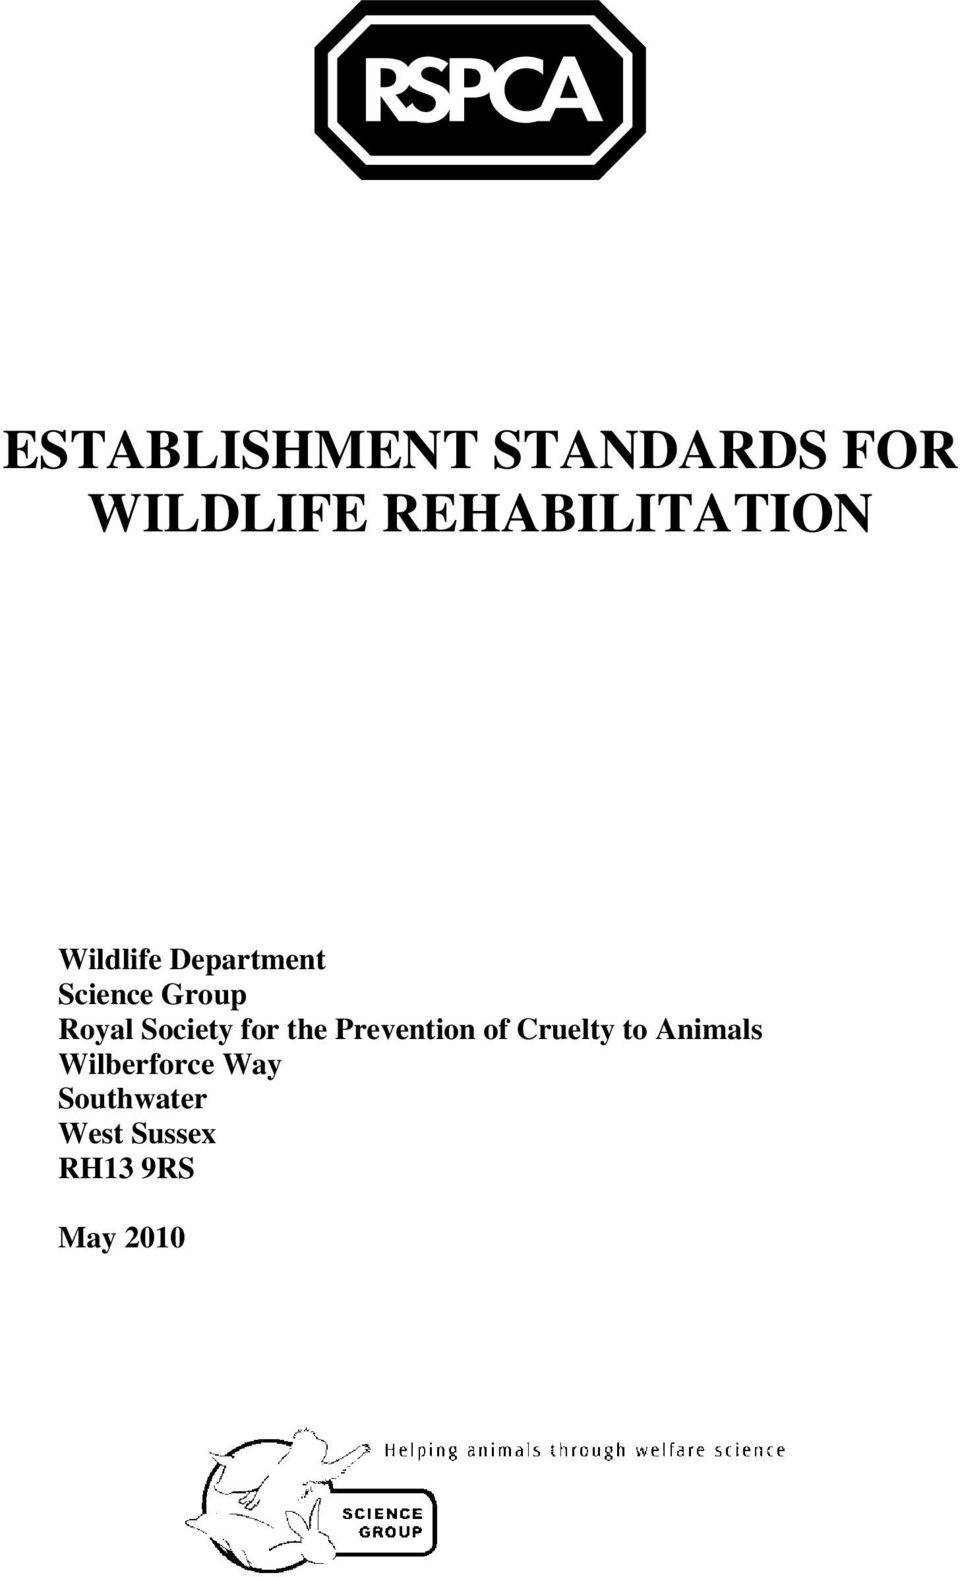 Royal Society for the Prevention of Cruelty to